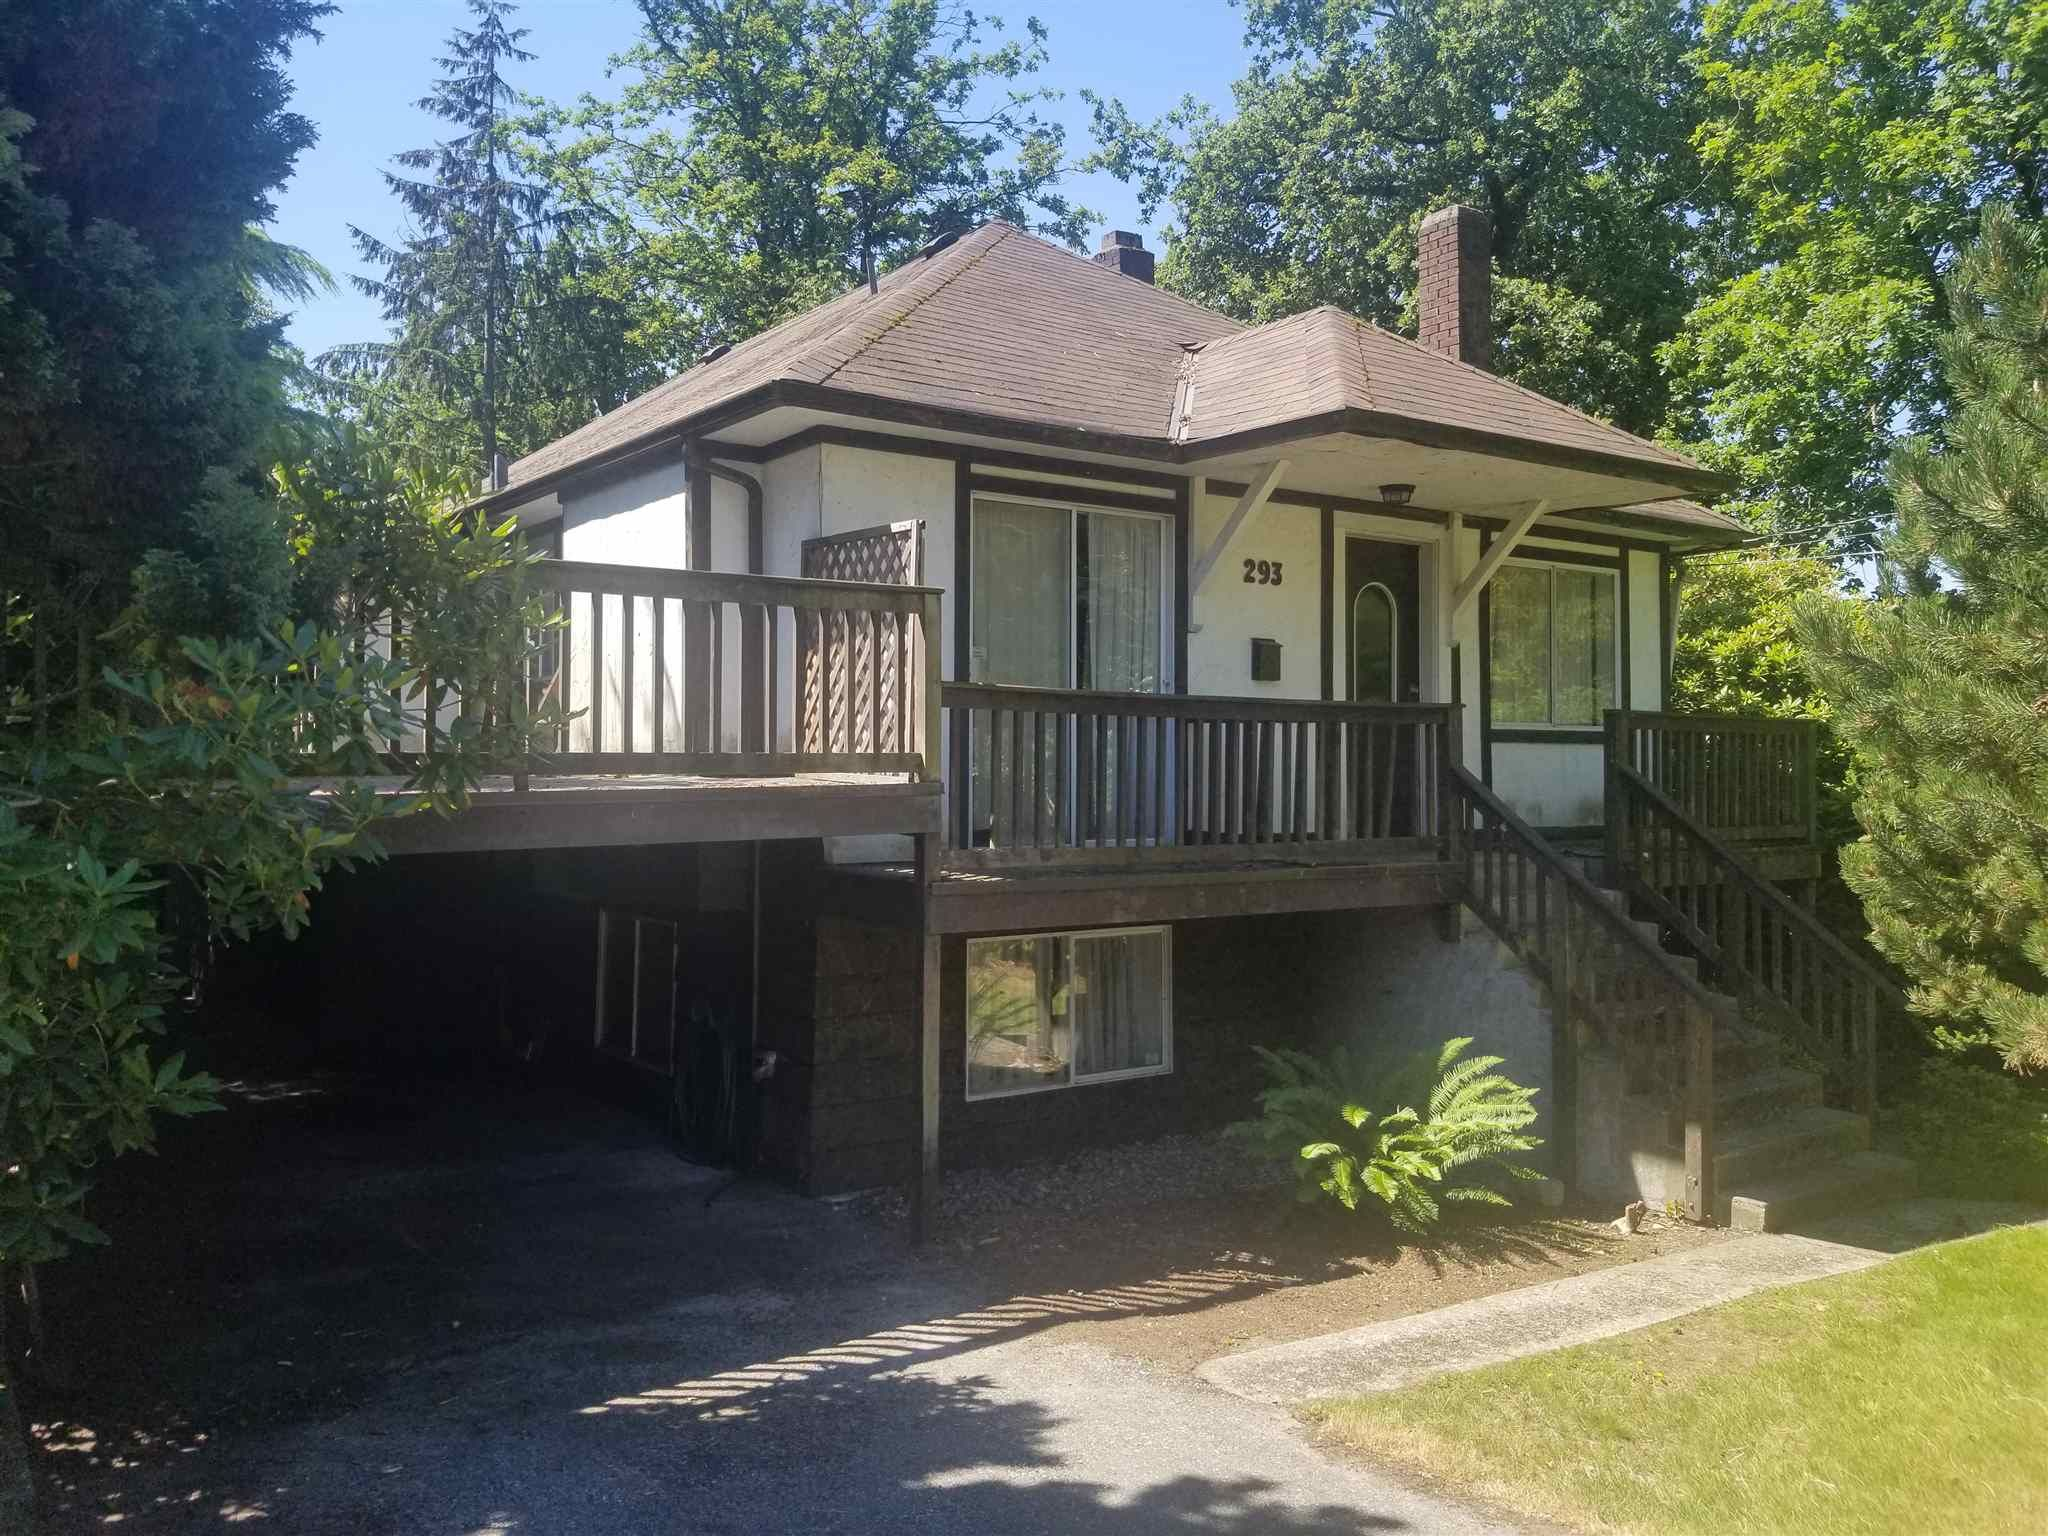 Main Photo: 293 W WINDSOR Road in North Vancouver: Upper Lonsdale House for sale : MLS®# R2571088